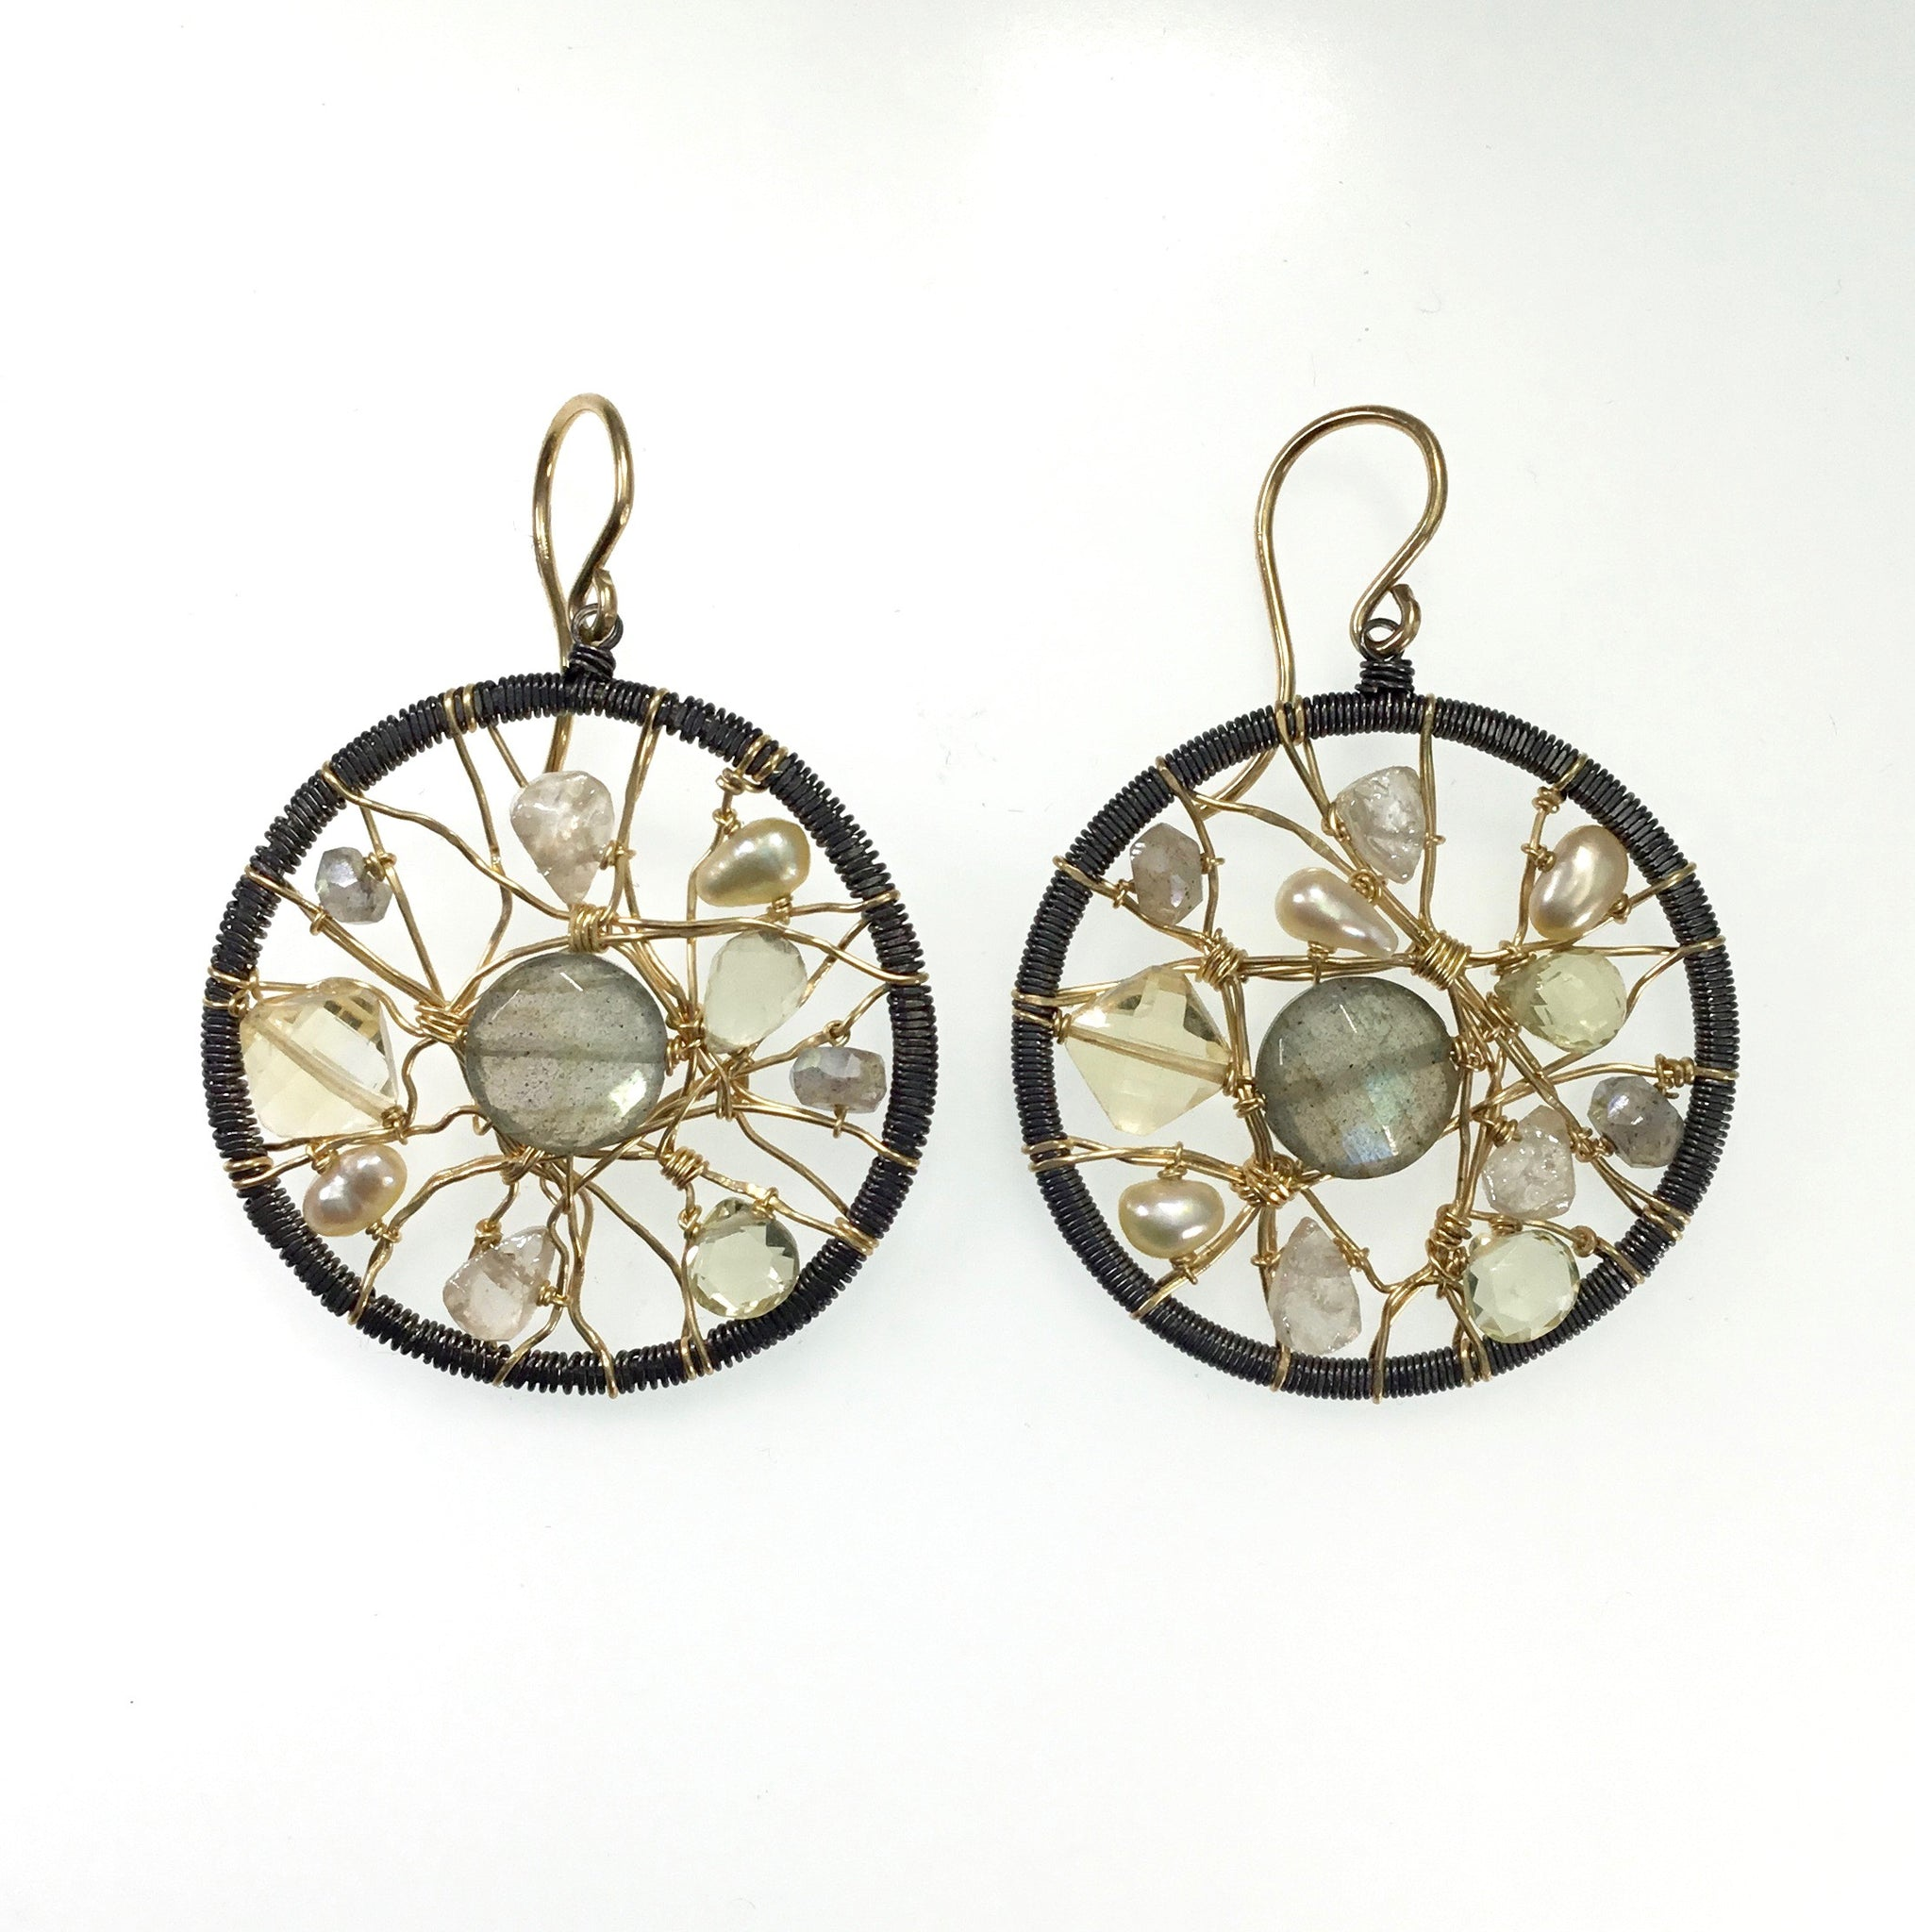 Dana Kellin Oxidized Silver & Gold Filled Earrings with Stone Mix